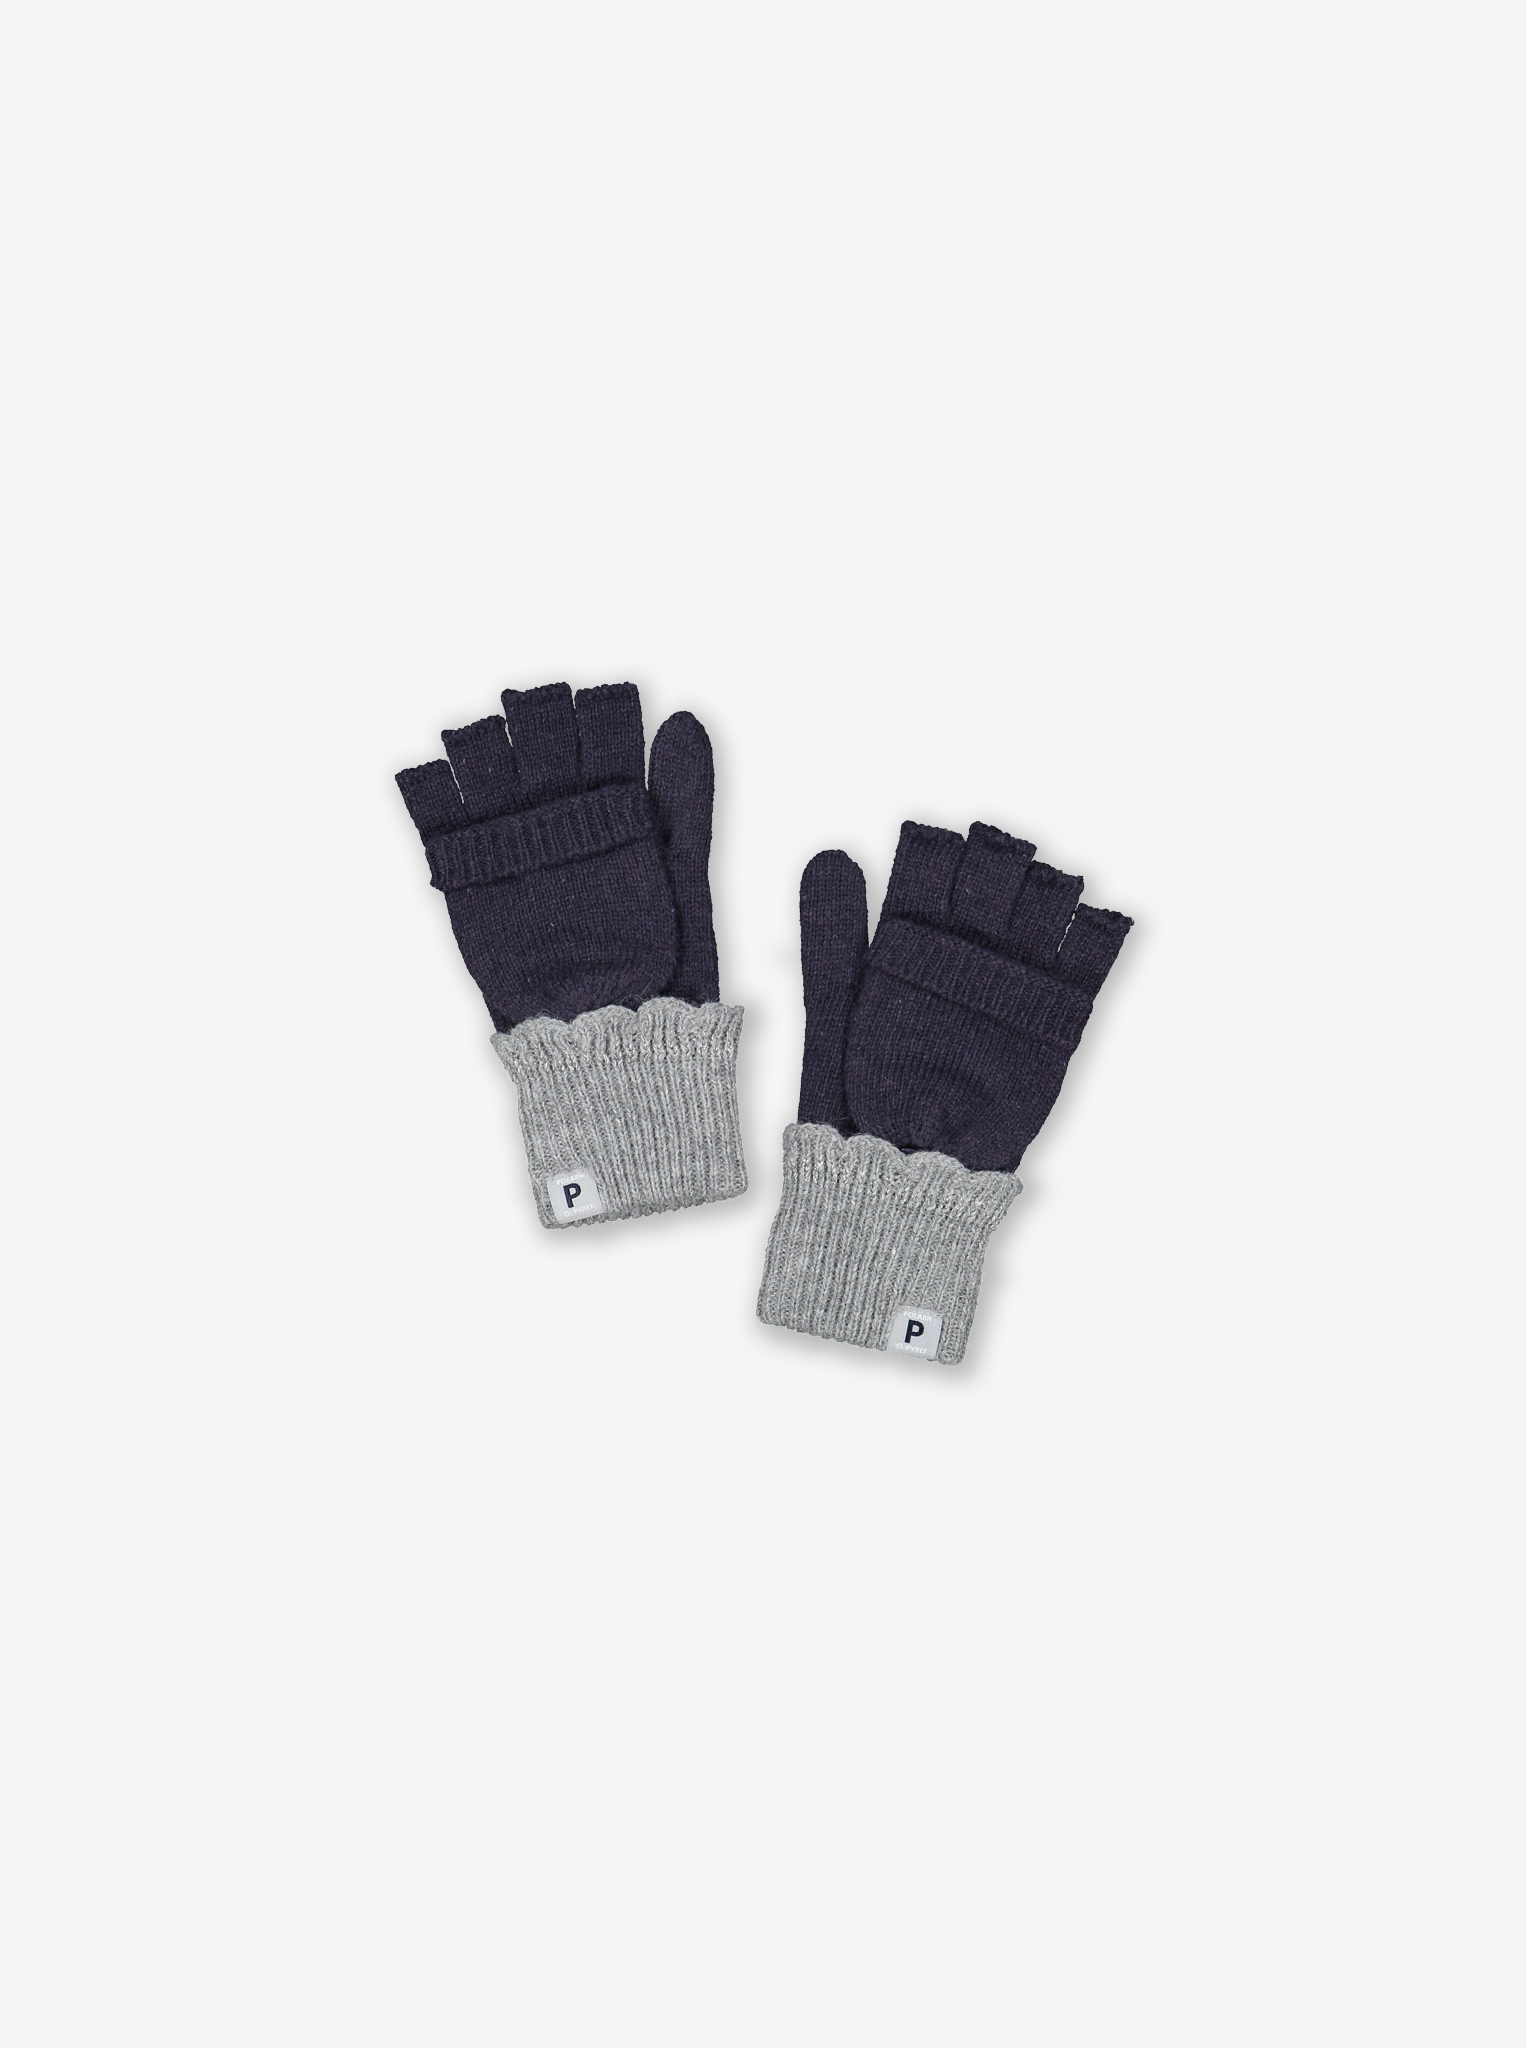 Reflective Flip-Top Kids Gloves